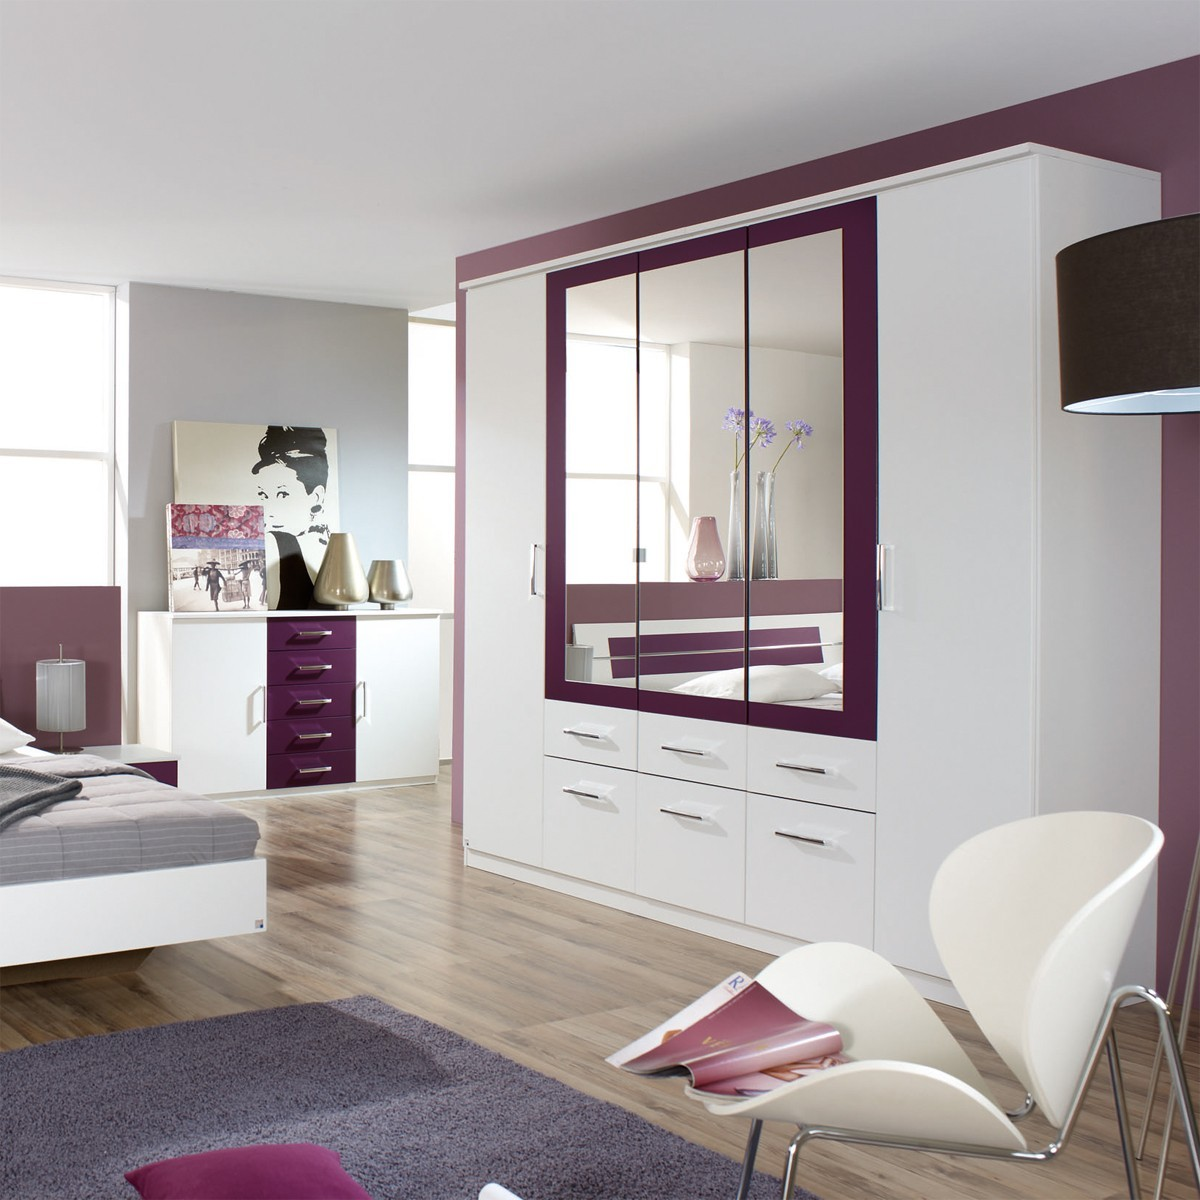 kleiderschrank schrank schlafzimmer burano wei brombeere 5 t rig ebay. Black Bedroom Furniture Sets. Home Design Ideas